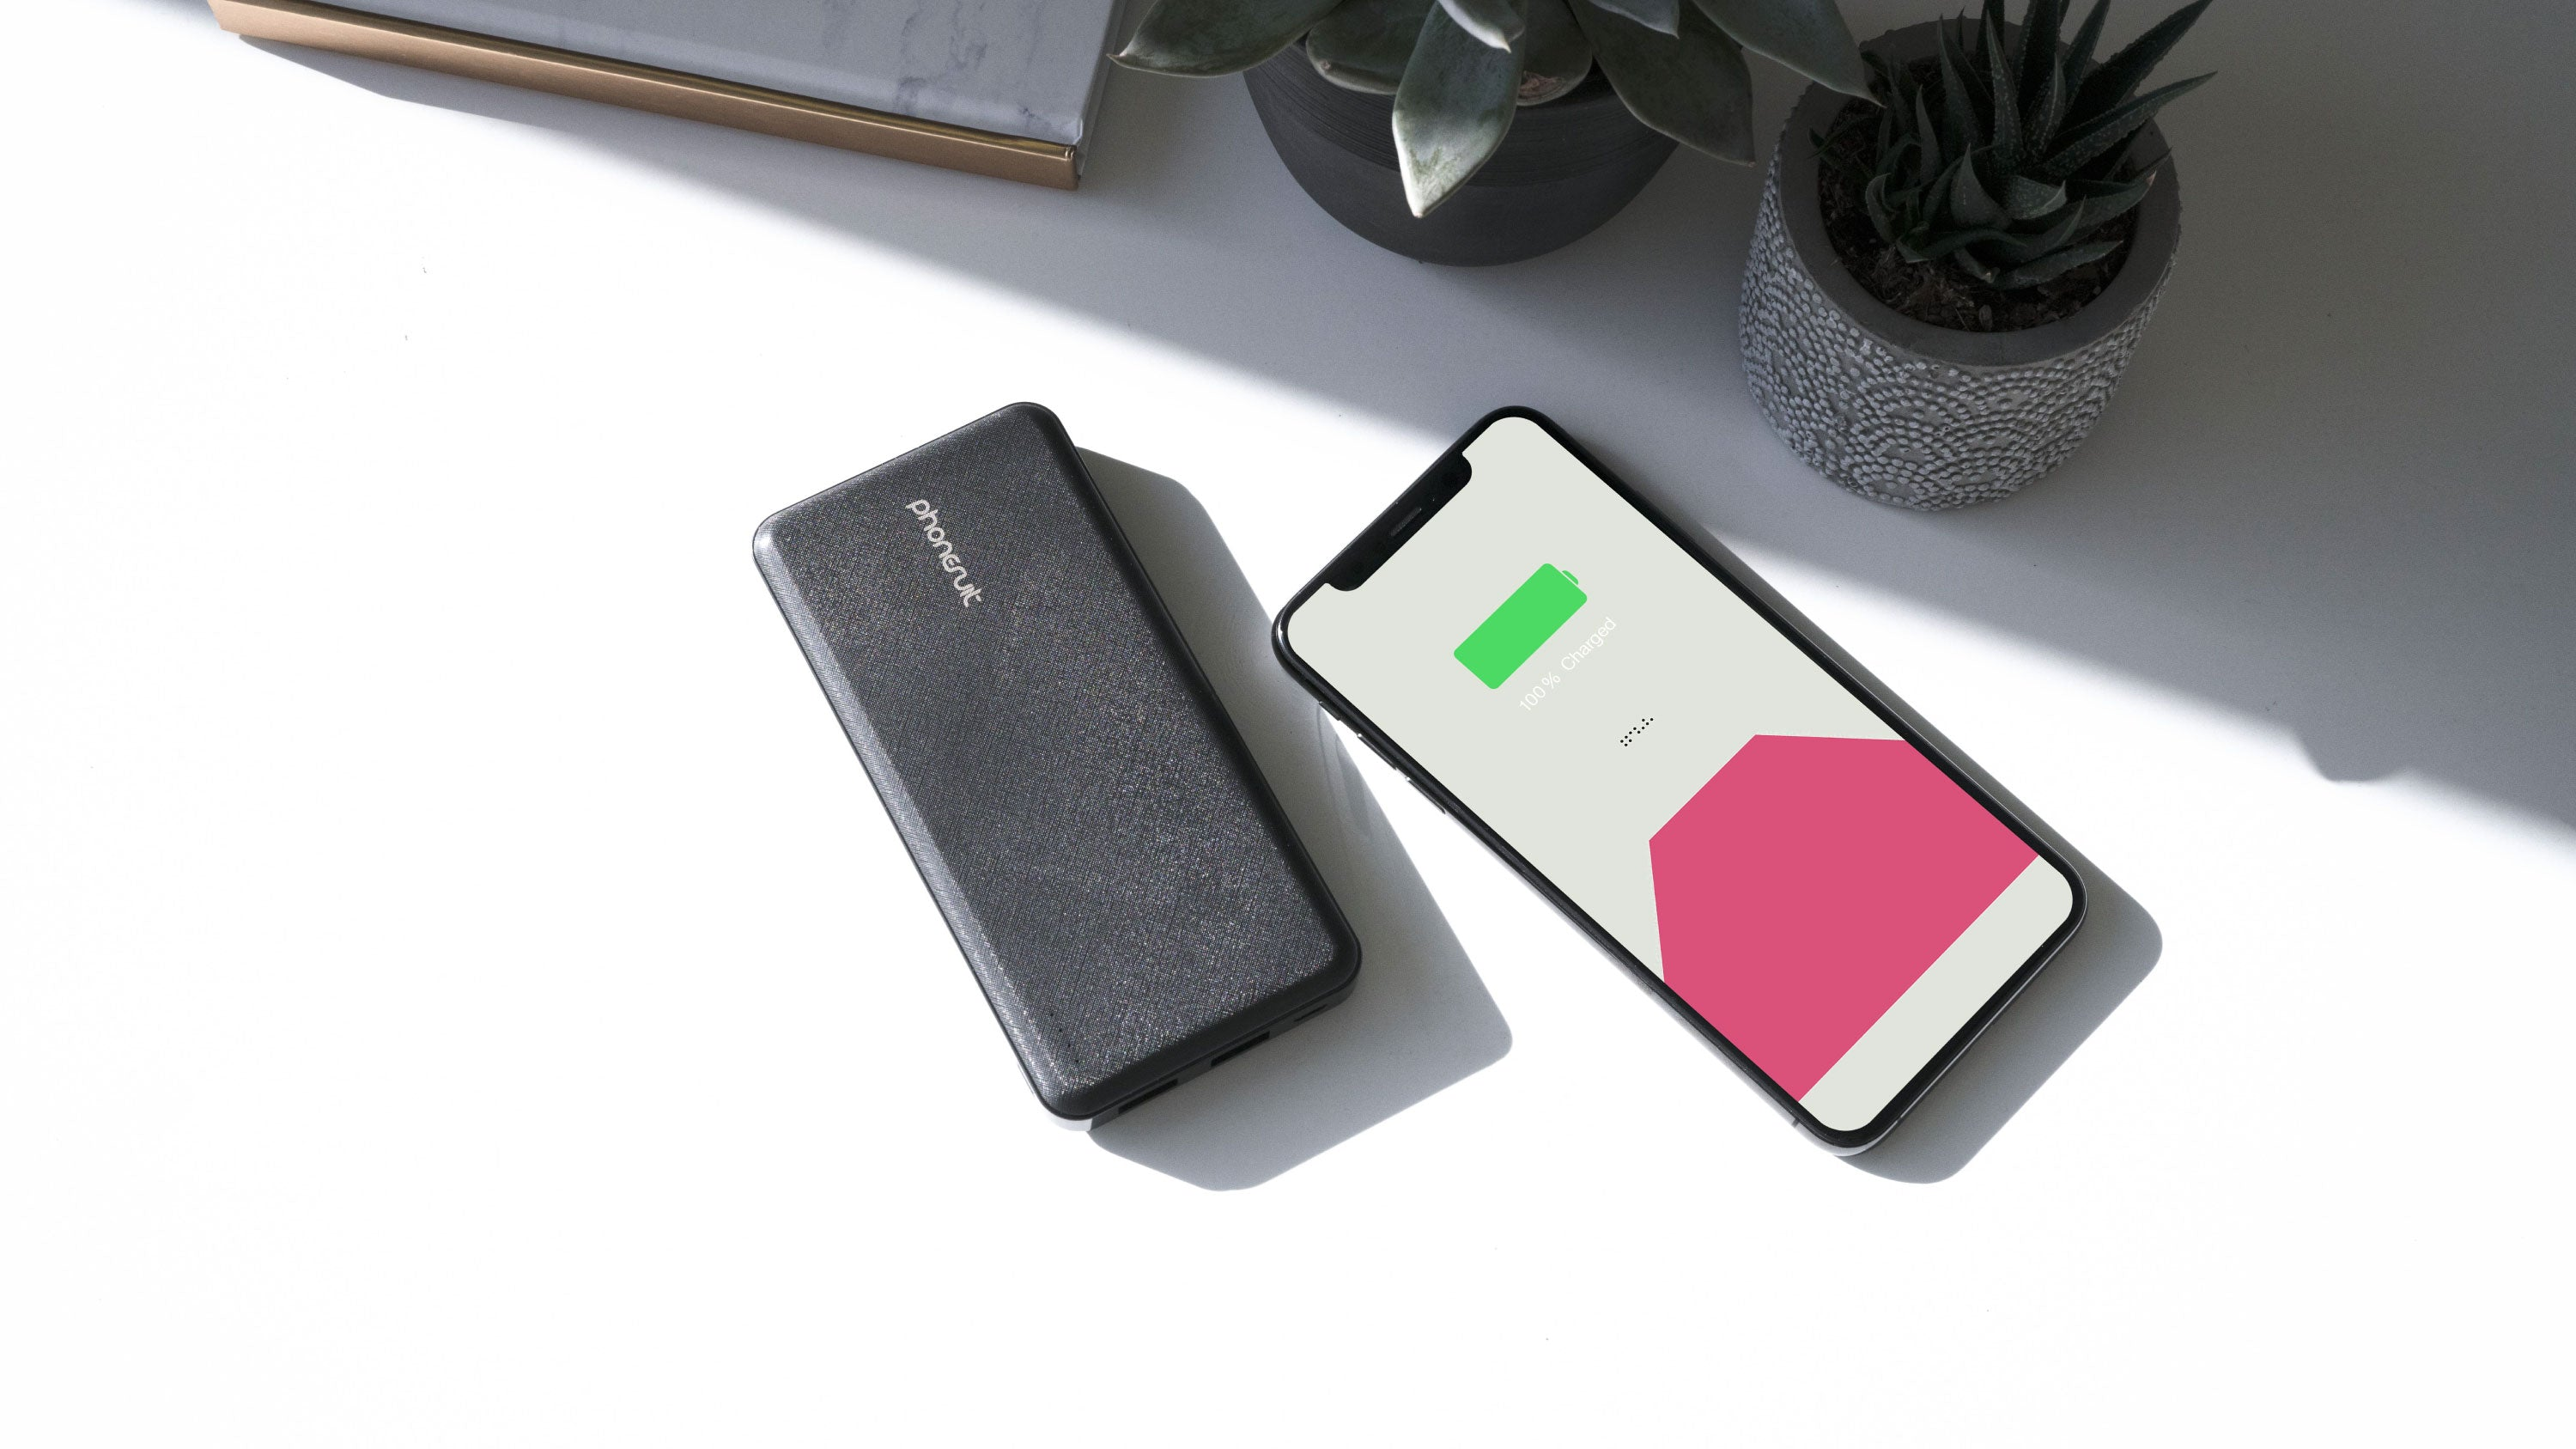 Energy Core LT Battery Pack for iPhone, Samsung & More